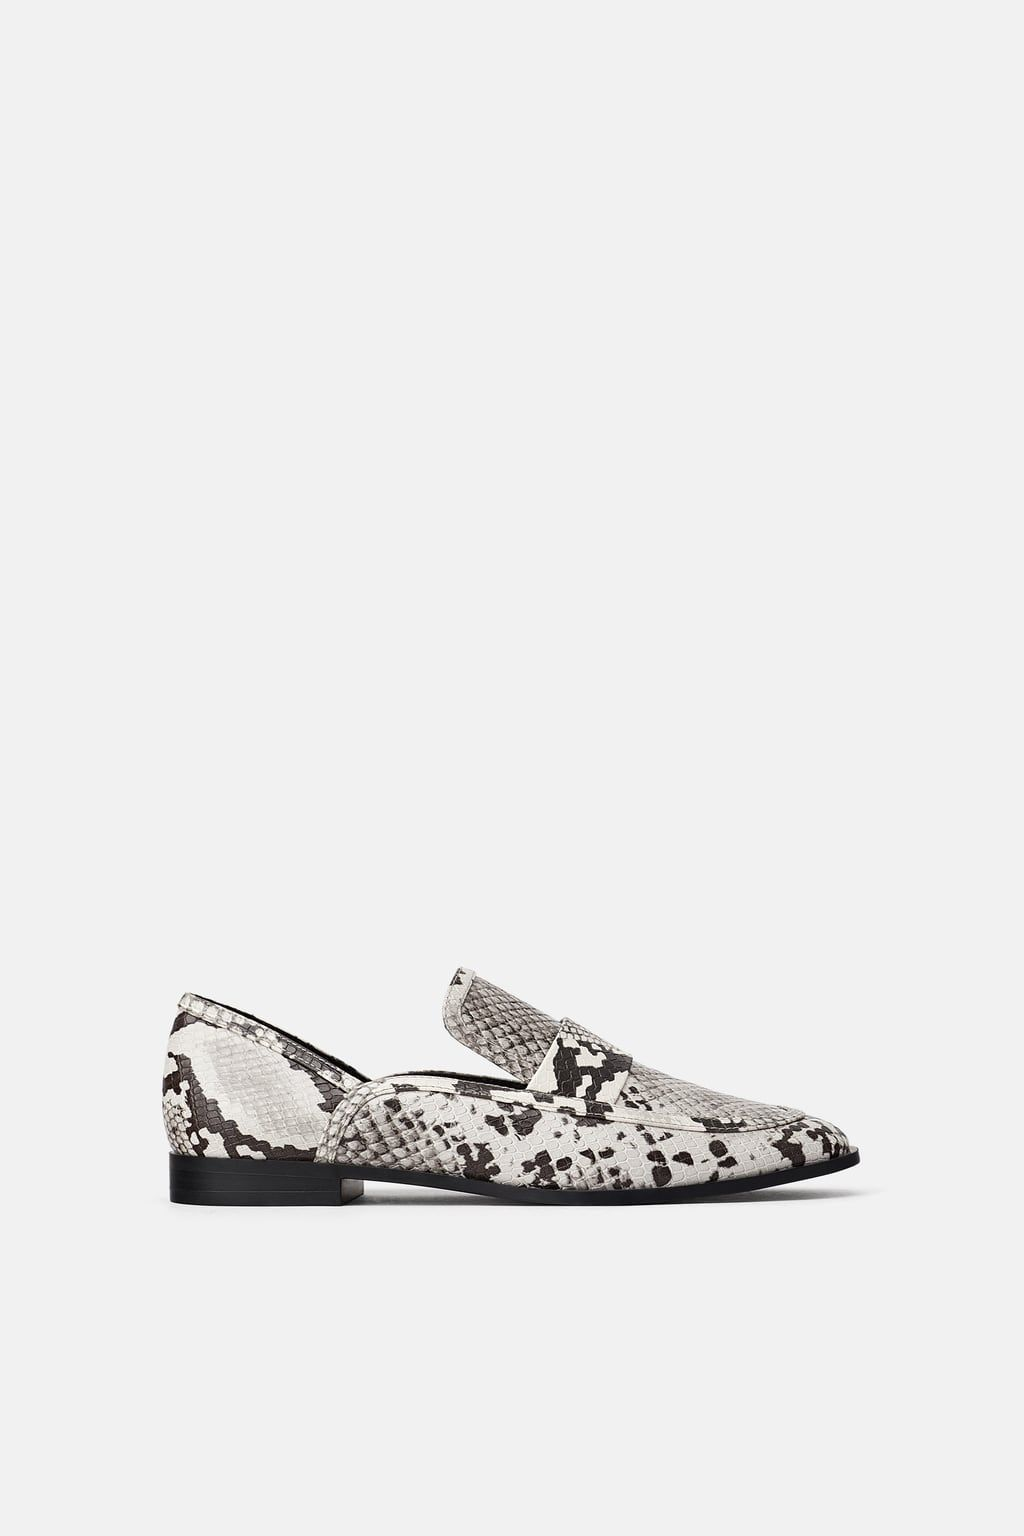 ANIMAL PRINT LOAFERS - View all-SHOES